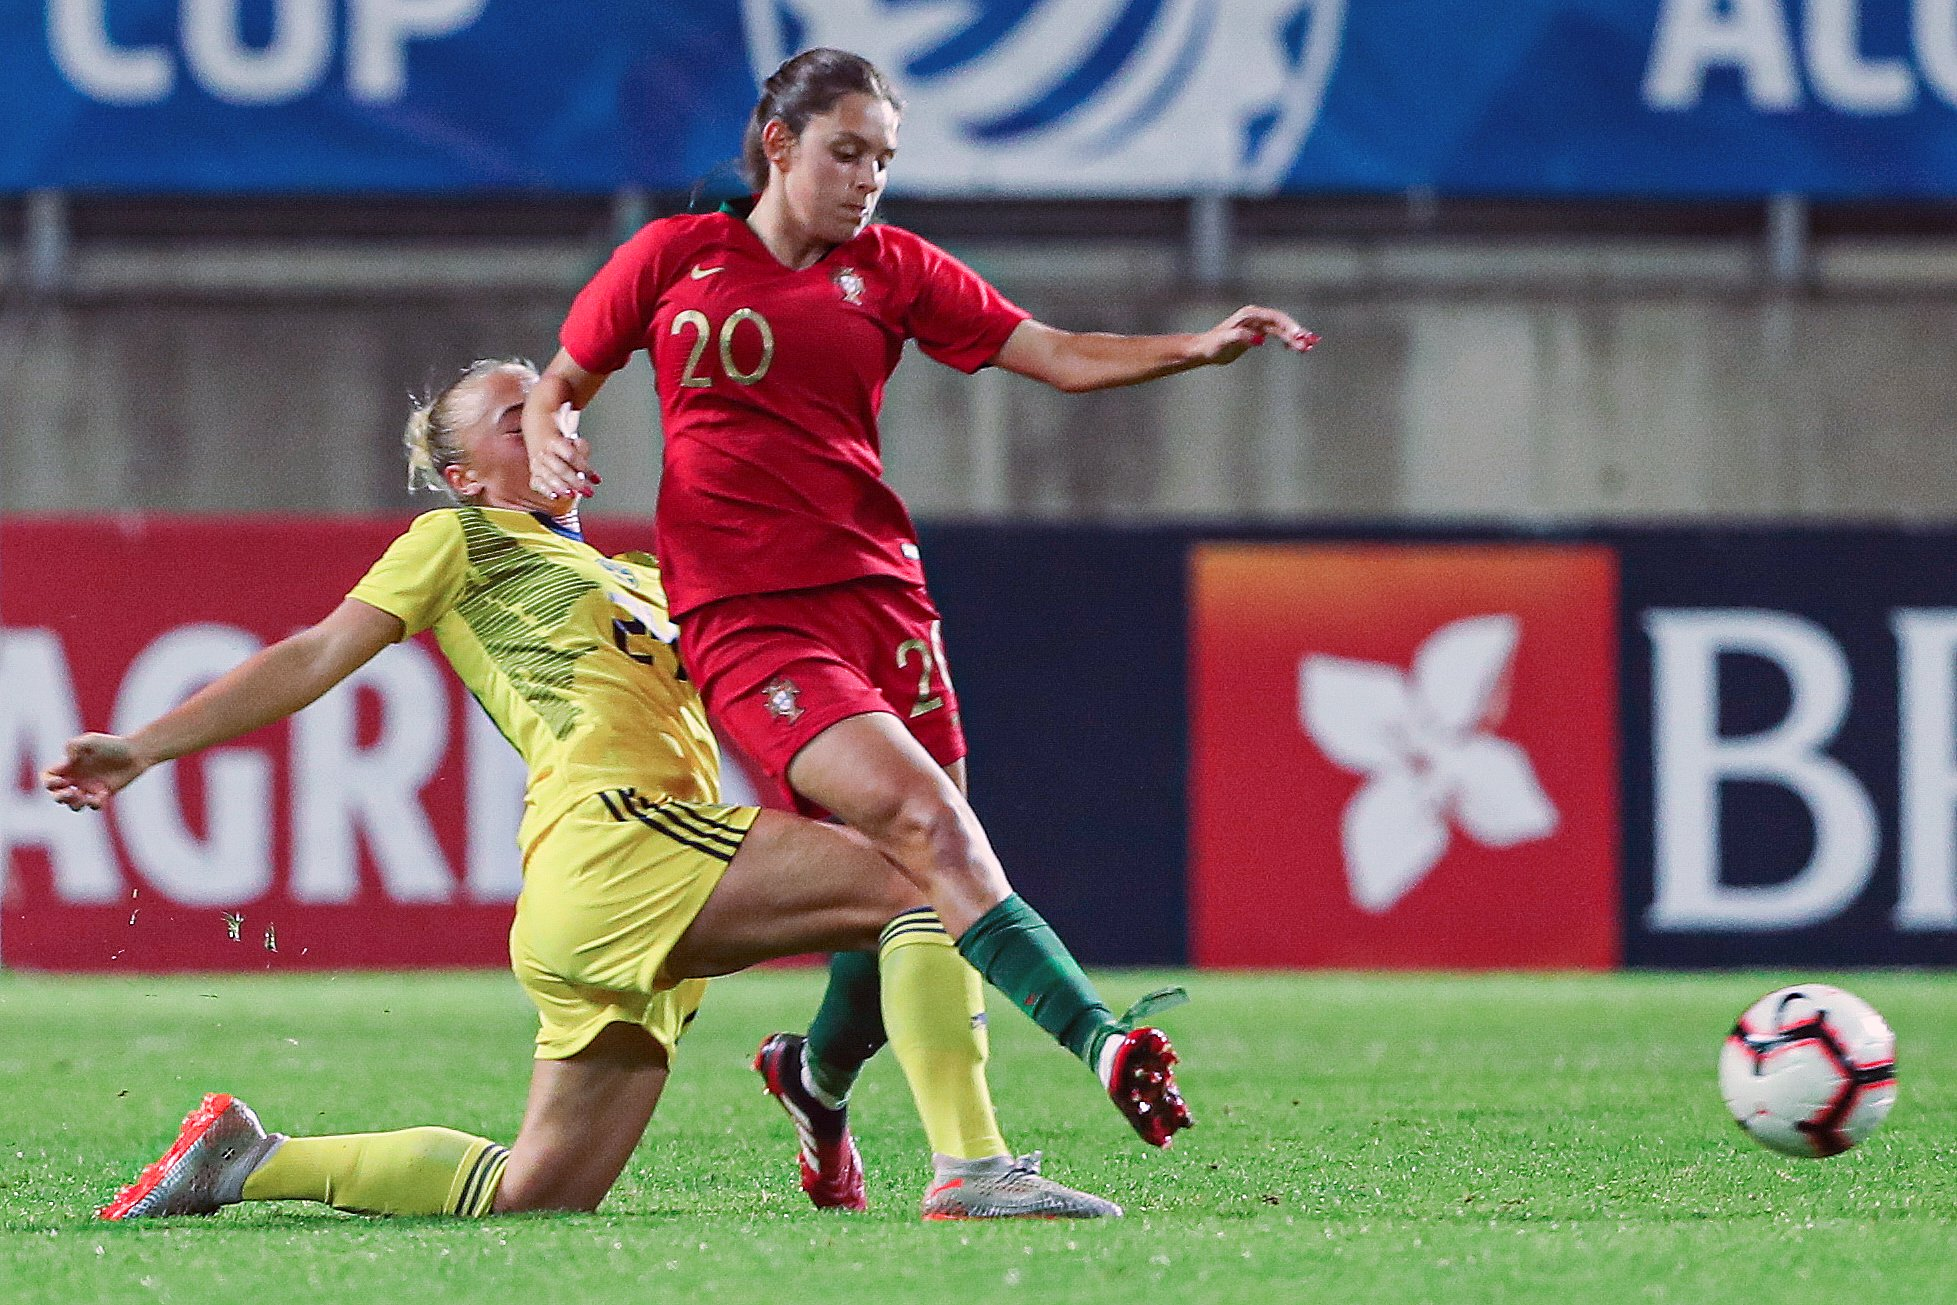 Portugal soccer player, Andreia Faria (R), fights for the ball with Hanna Bennison of Sweden during their Algarve Cup women soccer match held at Algarve Stadium, Faro, Algarve, Portugal, 10th March 2020. LUIS FORRA/LUSA